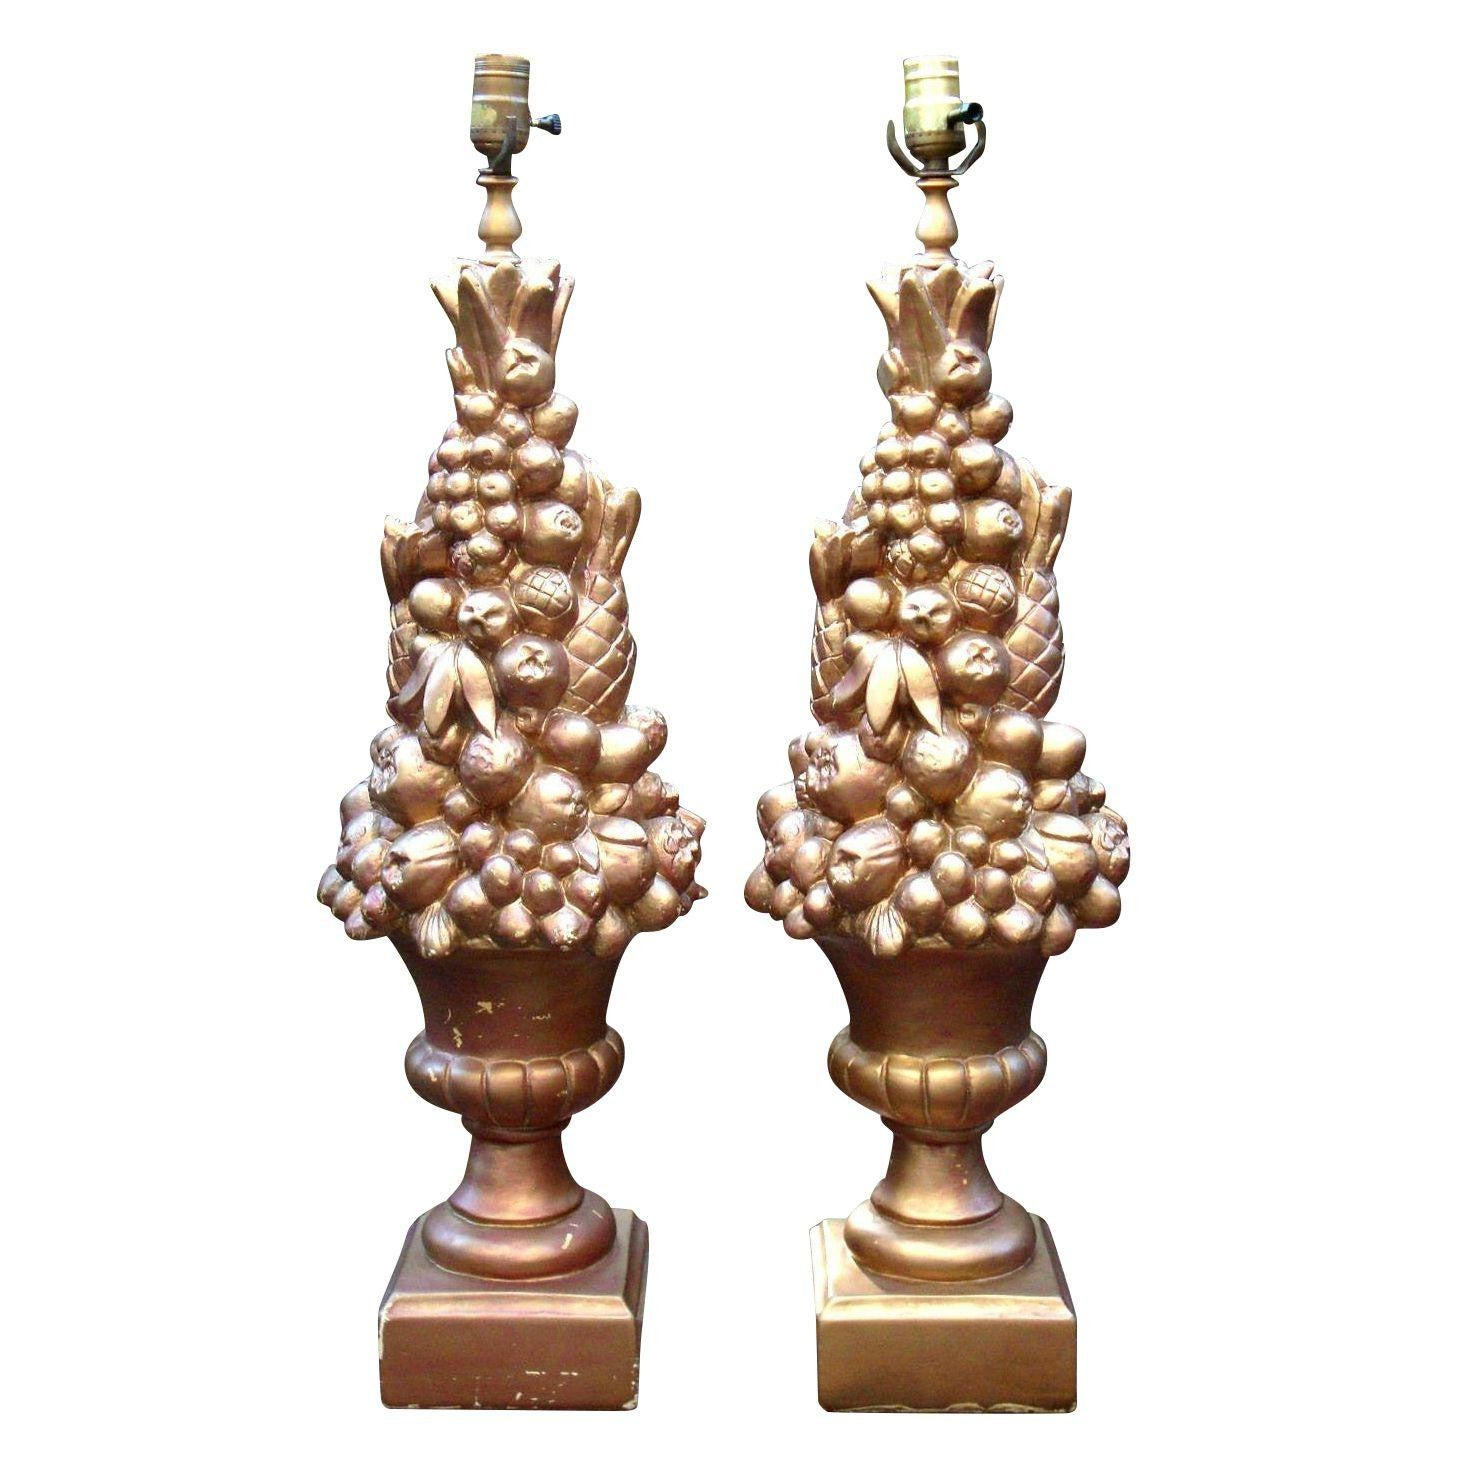 Monumental Hollywood Regency MONUMENTAL Art Deco GOLD FRUIT LAMPS - Pair of 2